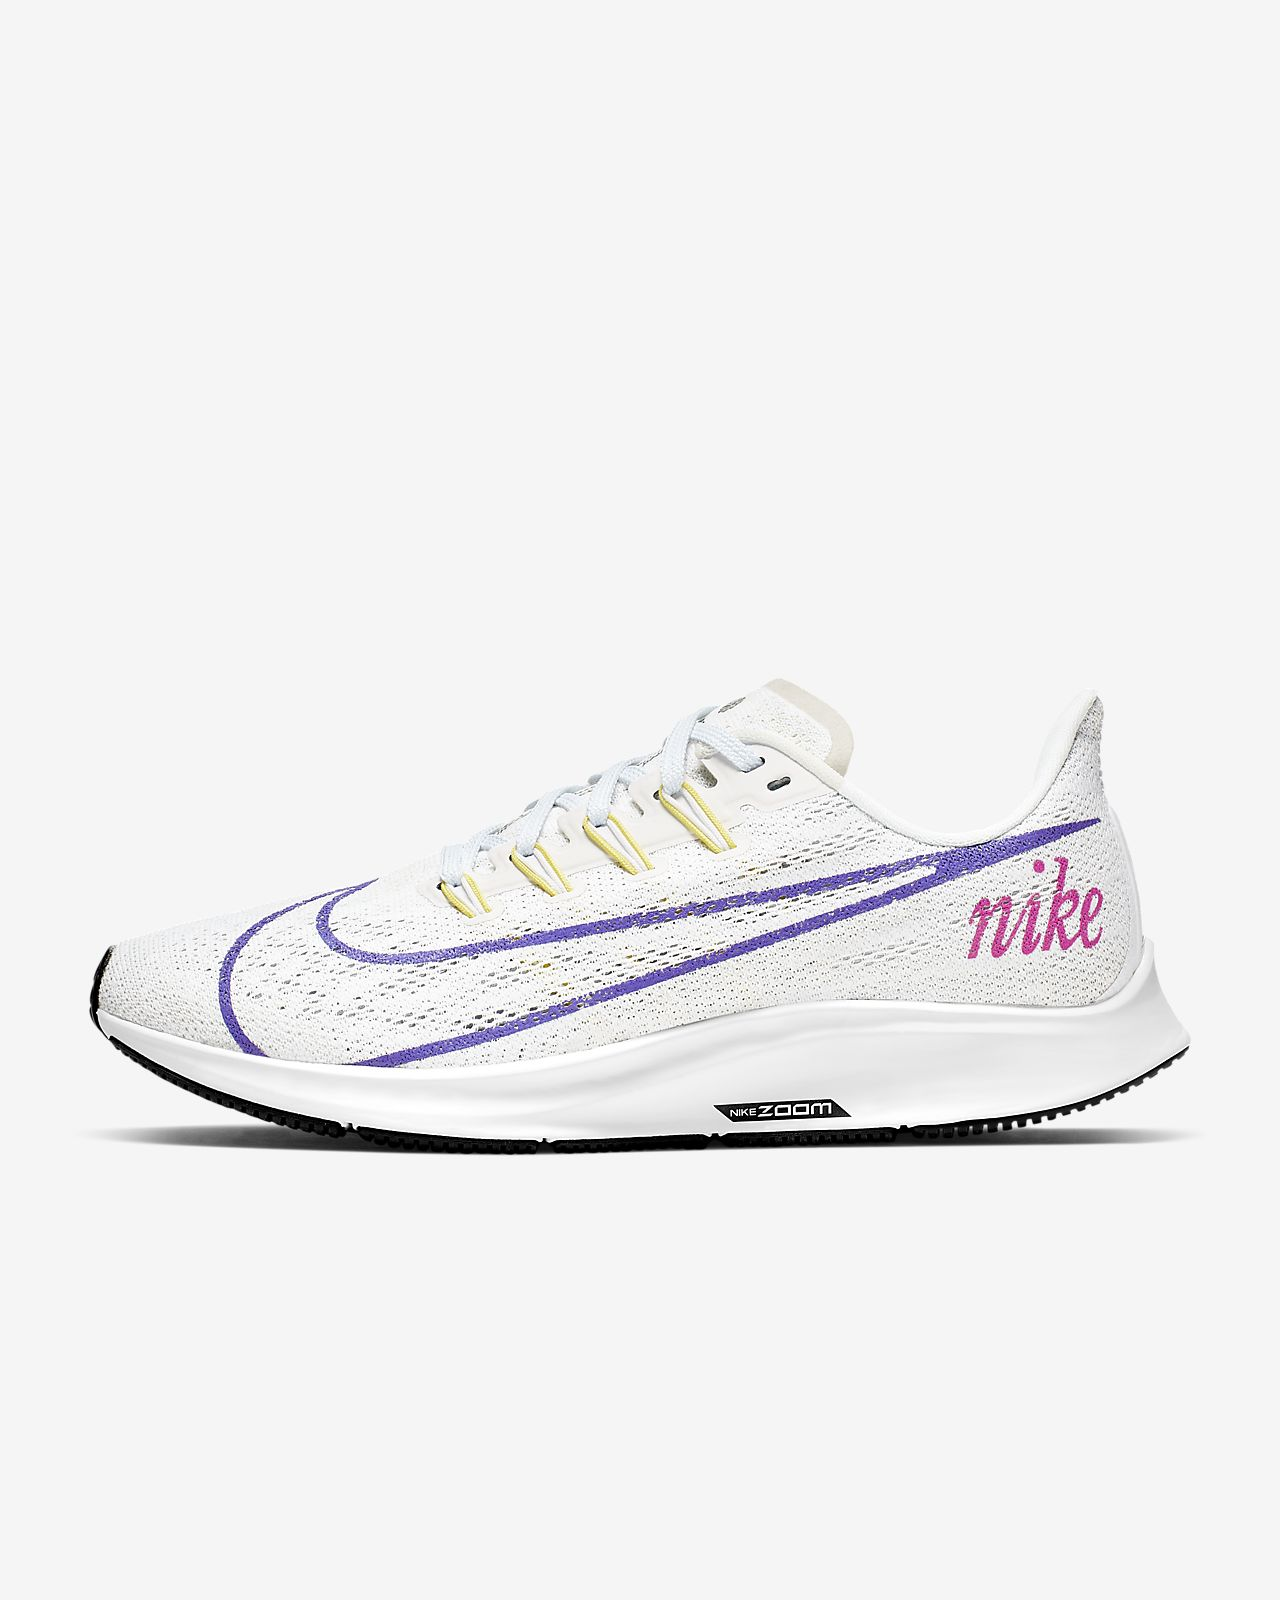 the sale of shoes sells buying now Chaussure de running Nike Air Zoom Pegasus 36 pour Femme. Nike FR